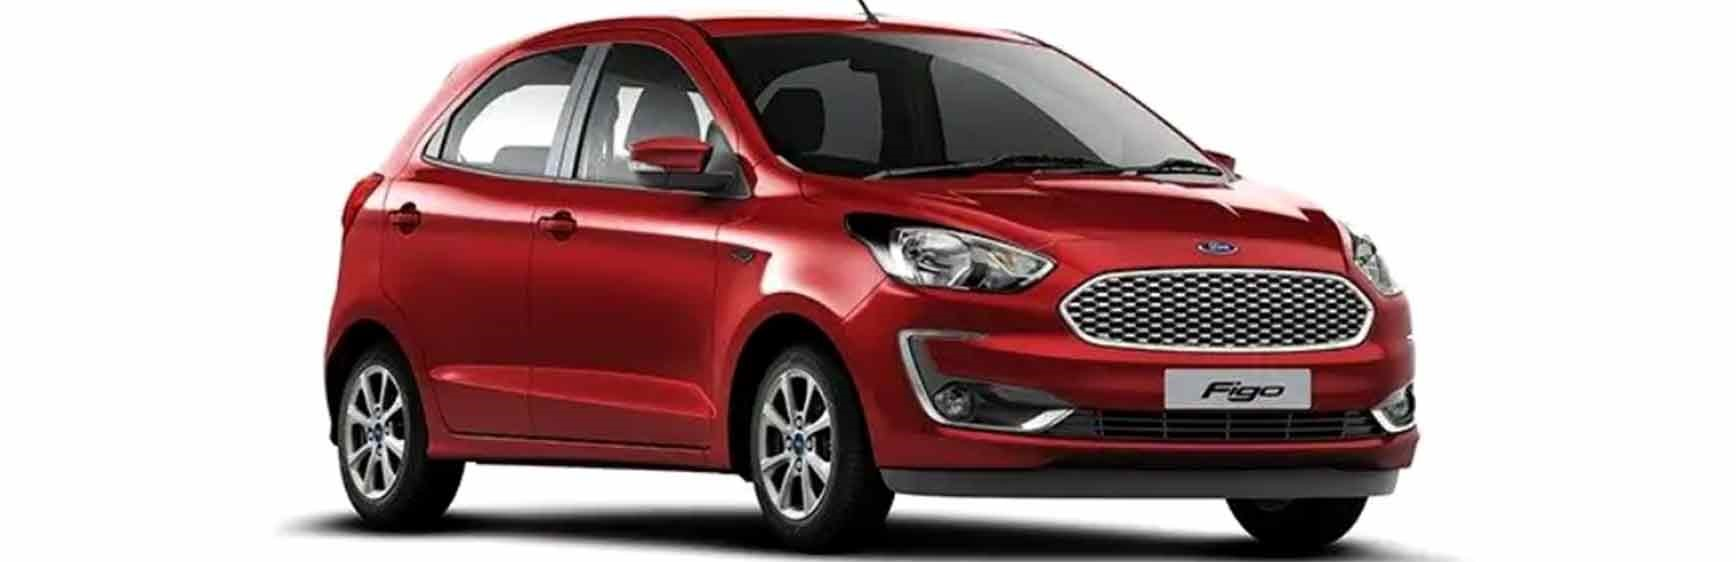 ford-figo-automatic-hatchback